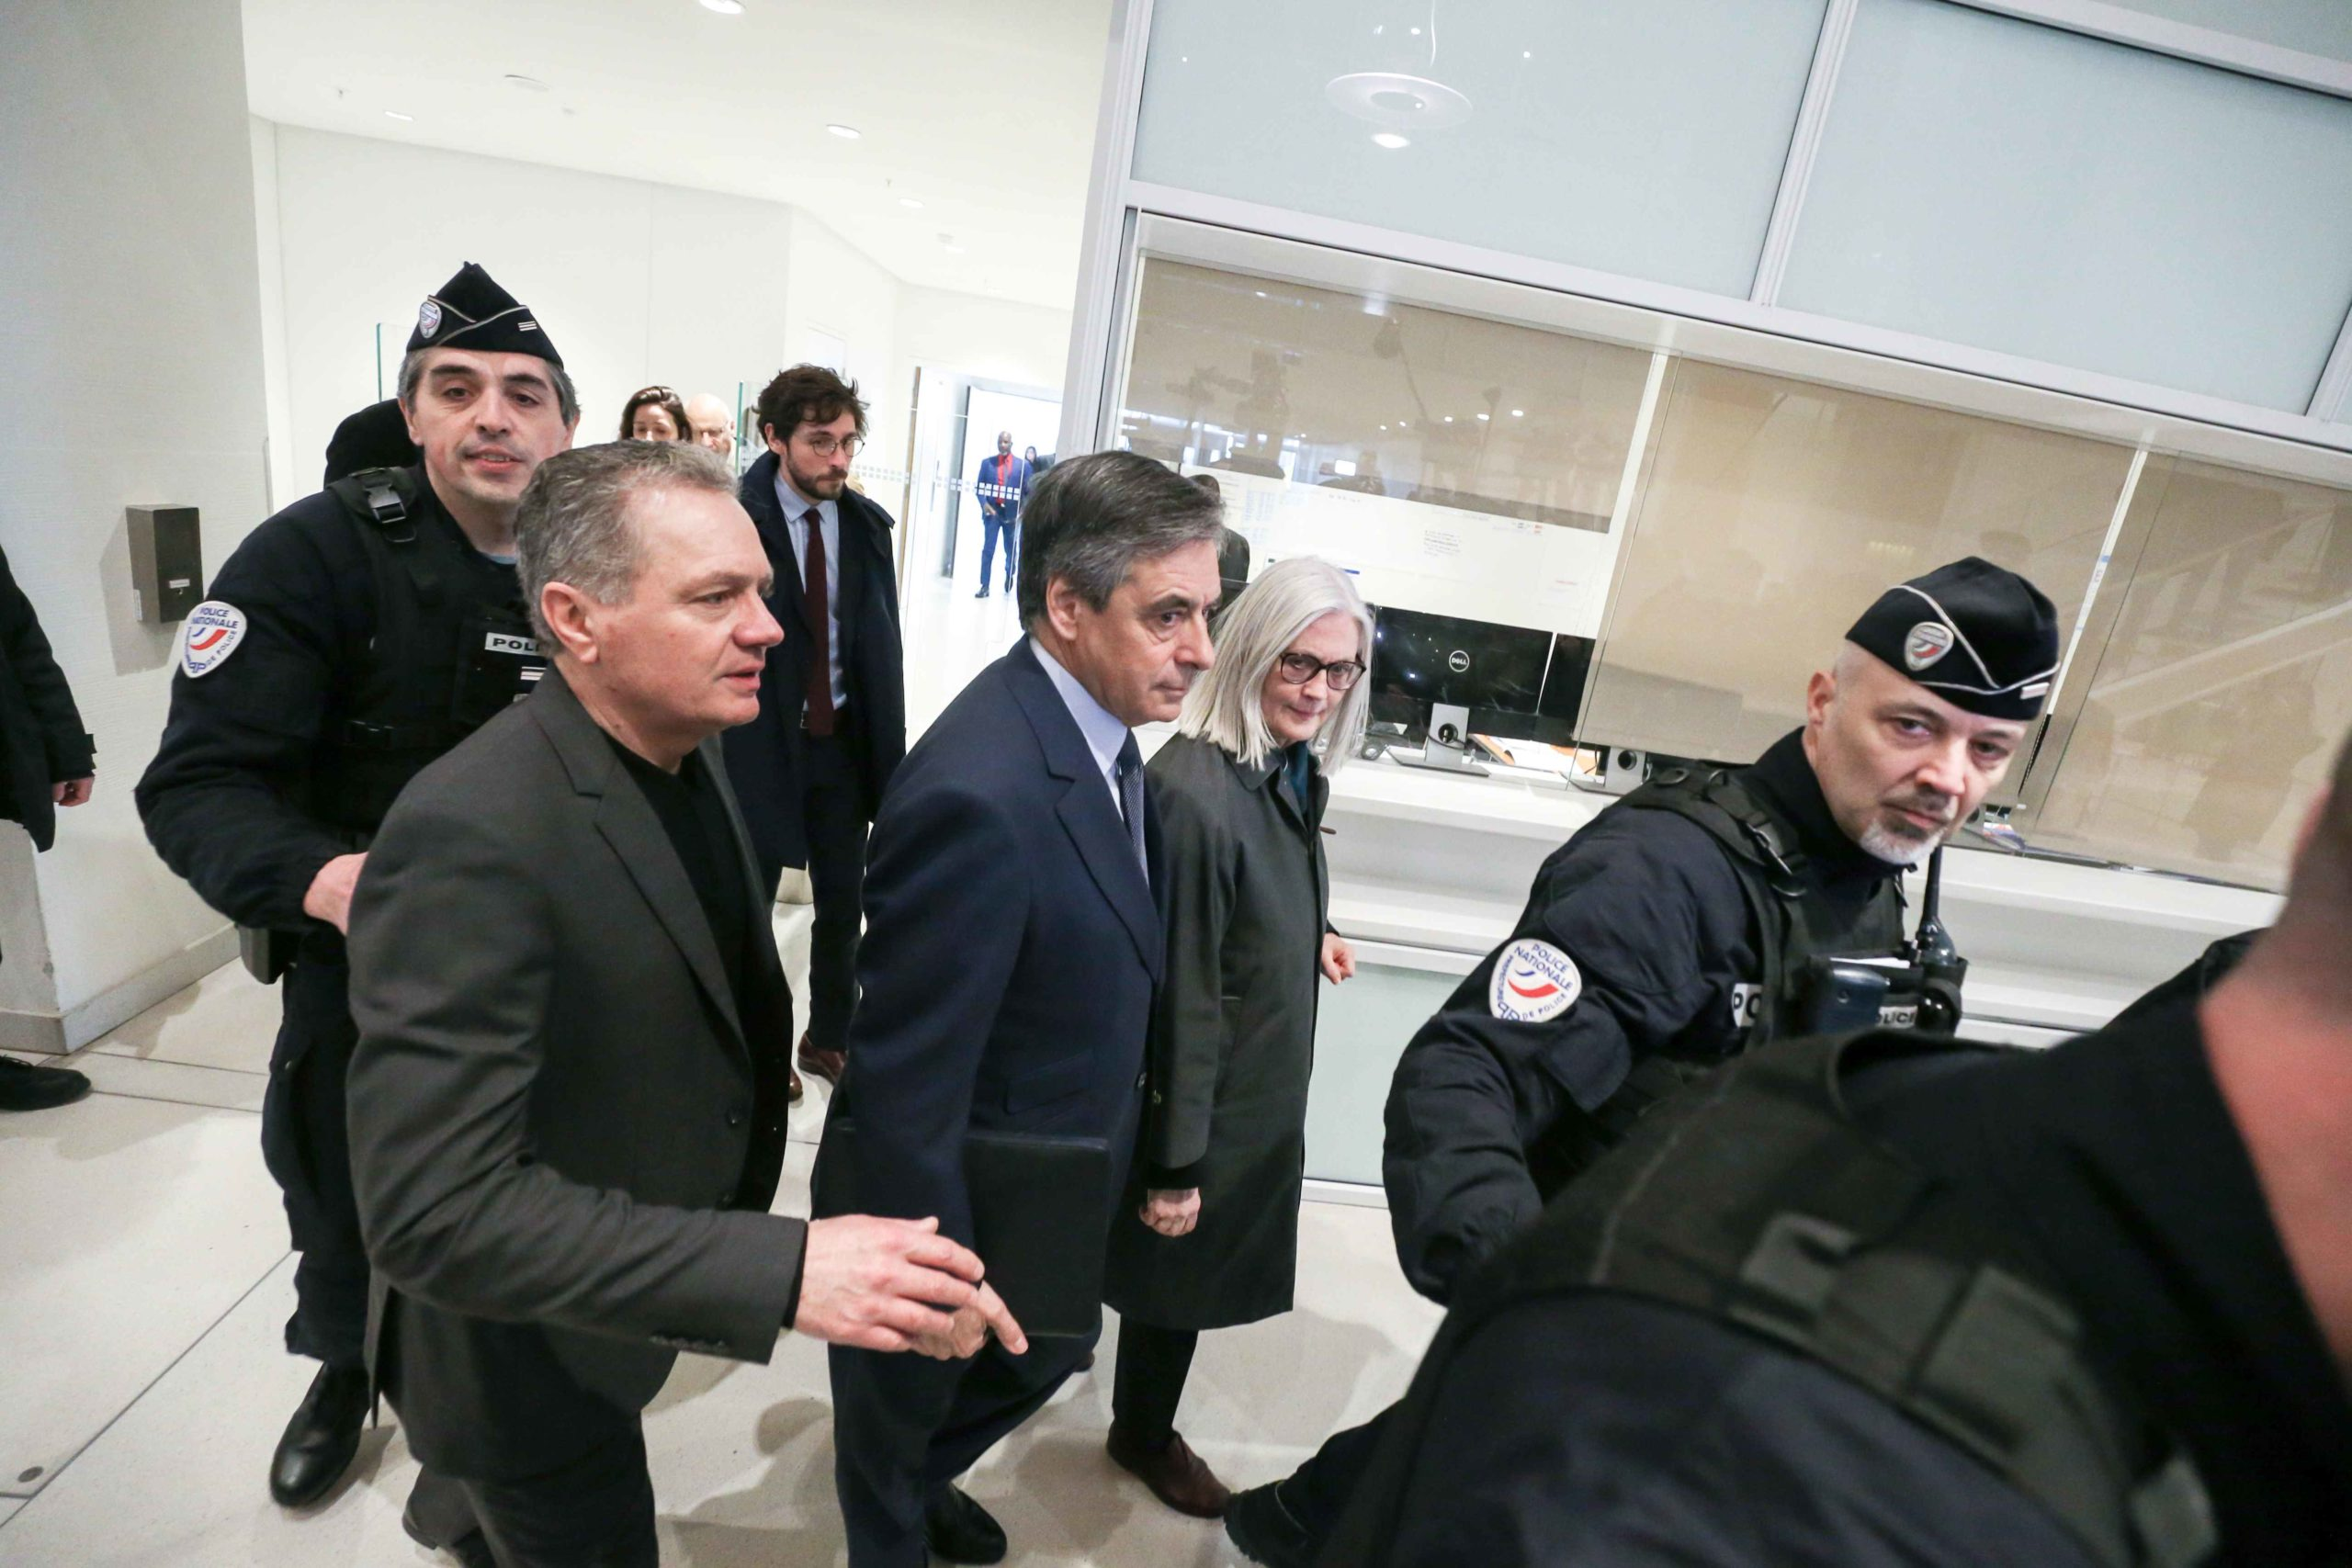 Former French Prime minister Francois Fillon (C-L) and his wife Penelope (C-R) arrive at Paris' courthouse, on February 26, 2020, for the opening hearing of their trial over claims they embezzled over one million euros in an alleged fake-jobs fraud. Invest